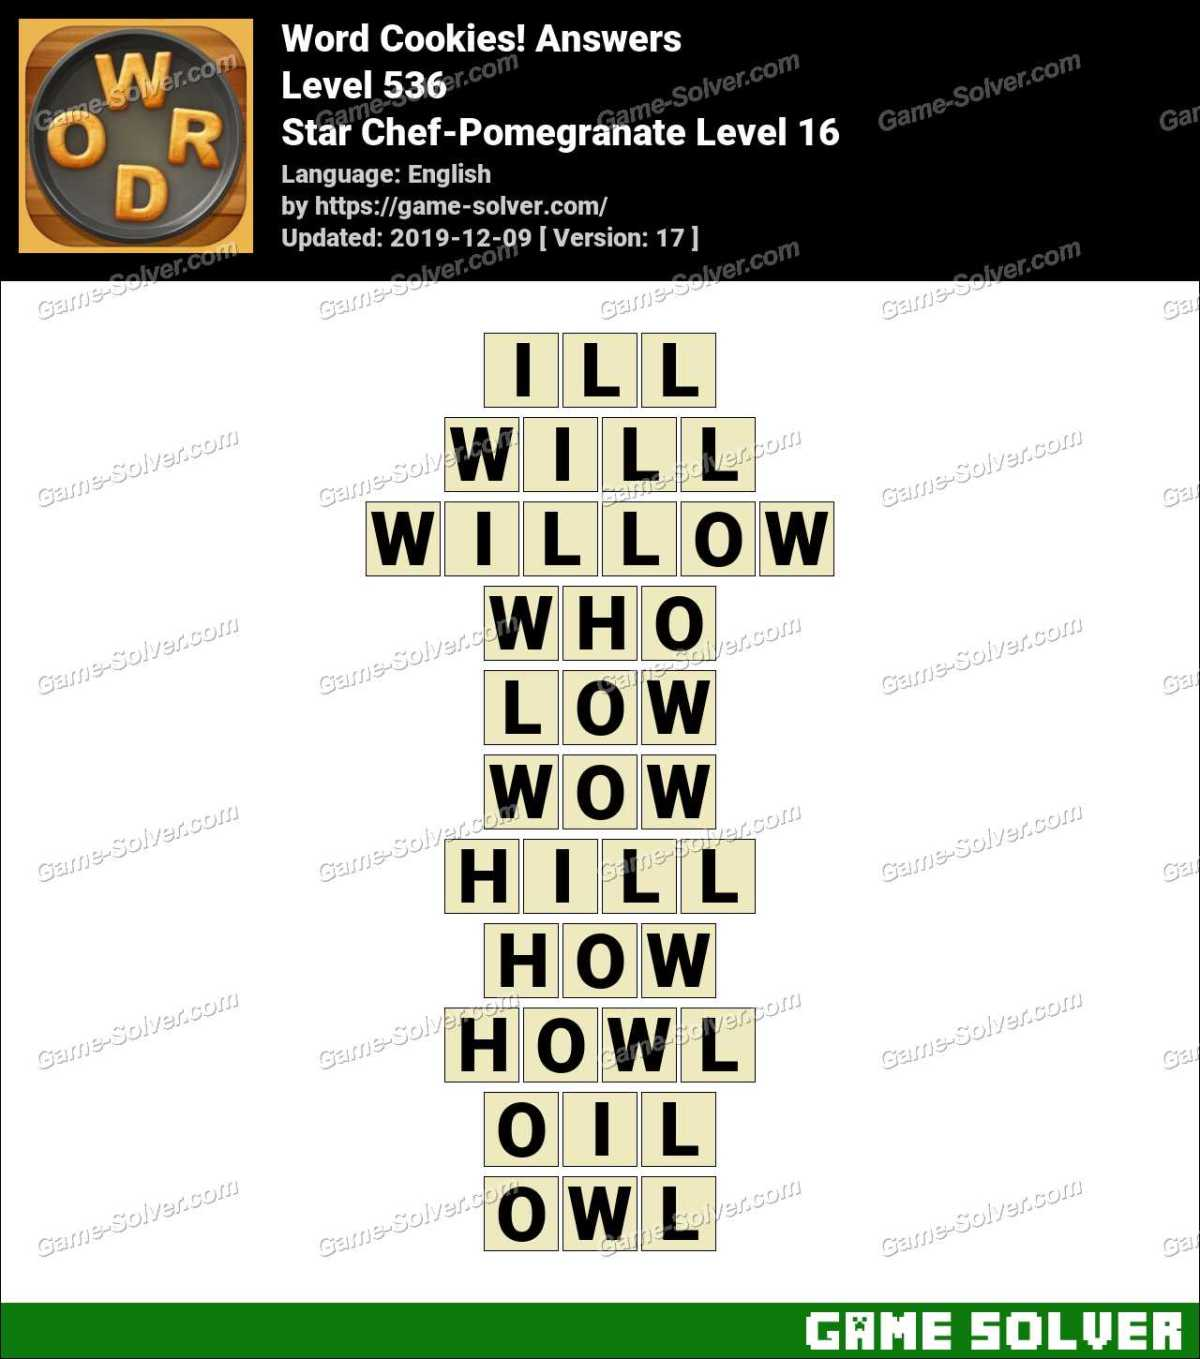 Word Cookies Star Chef-Pomegranate Level 16 Answers